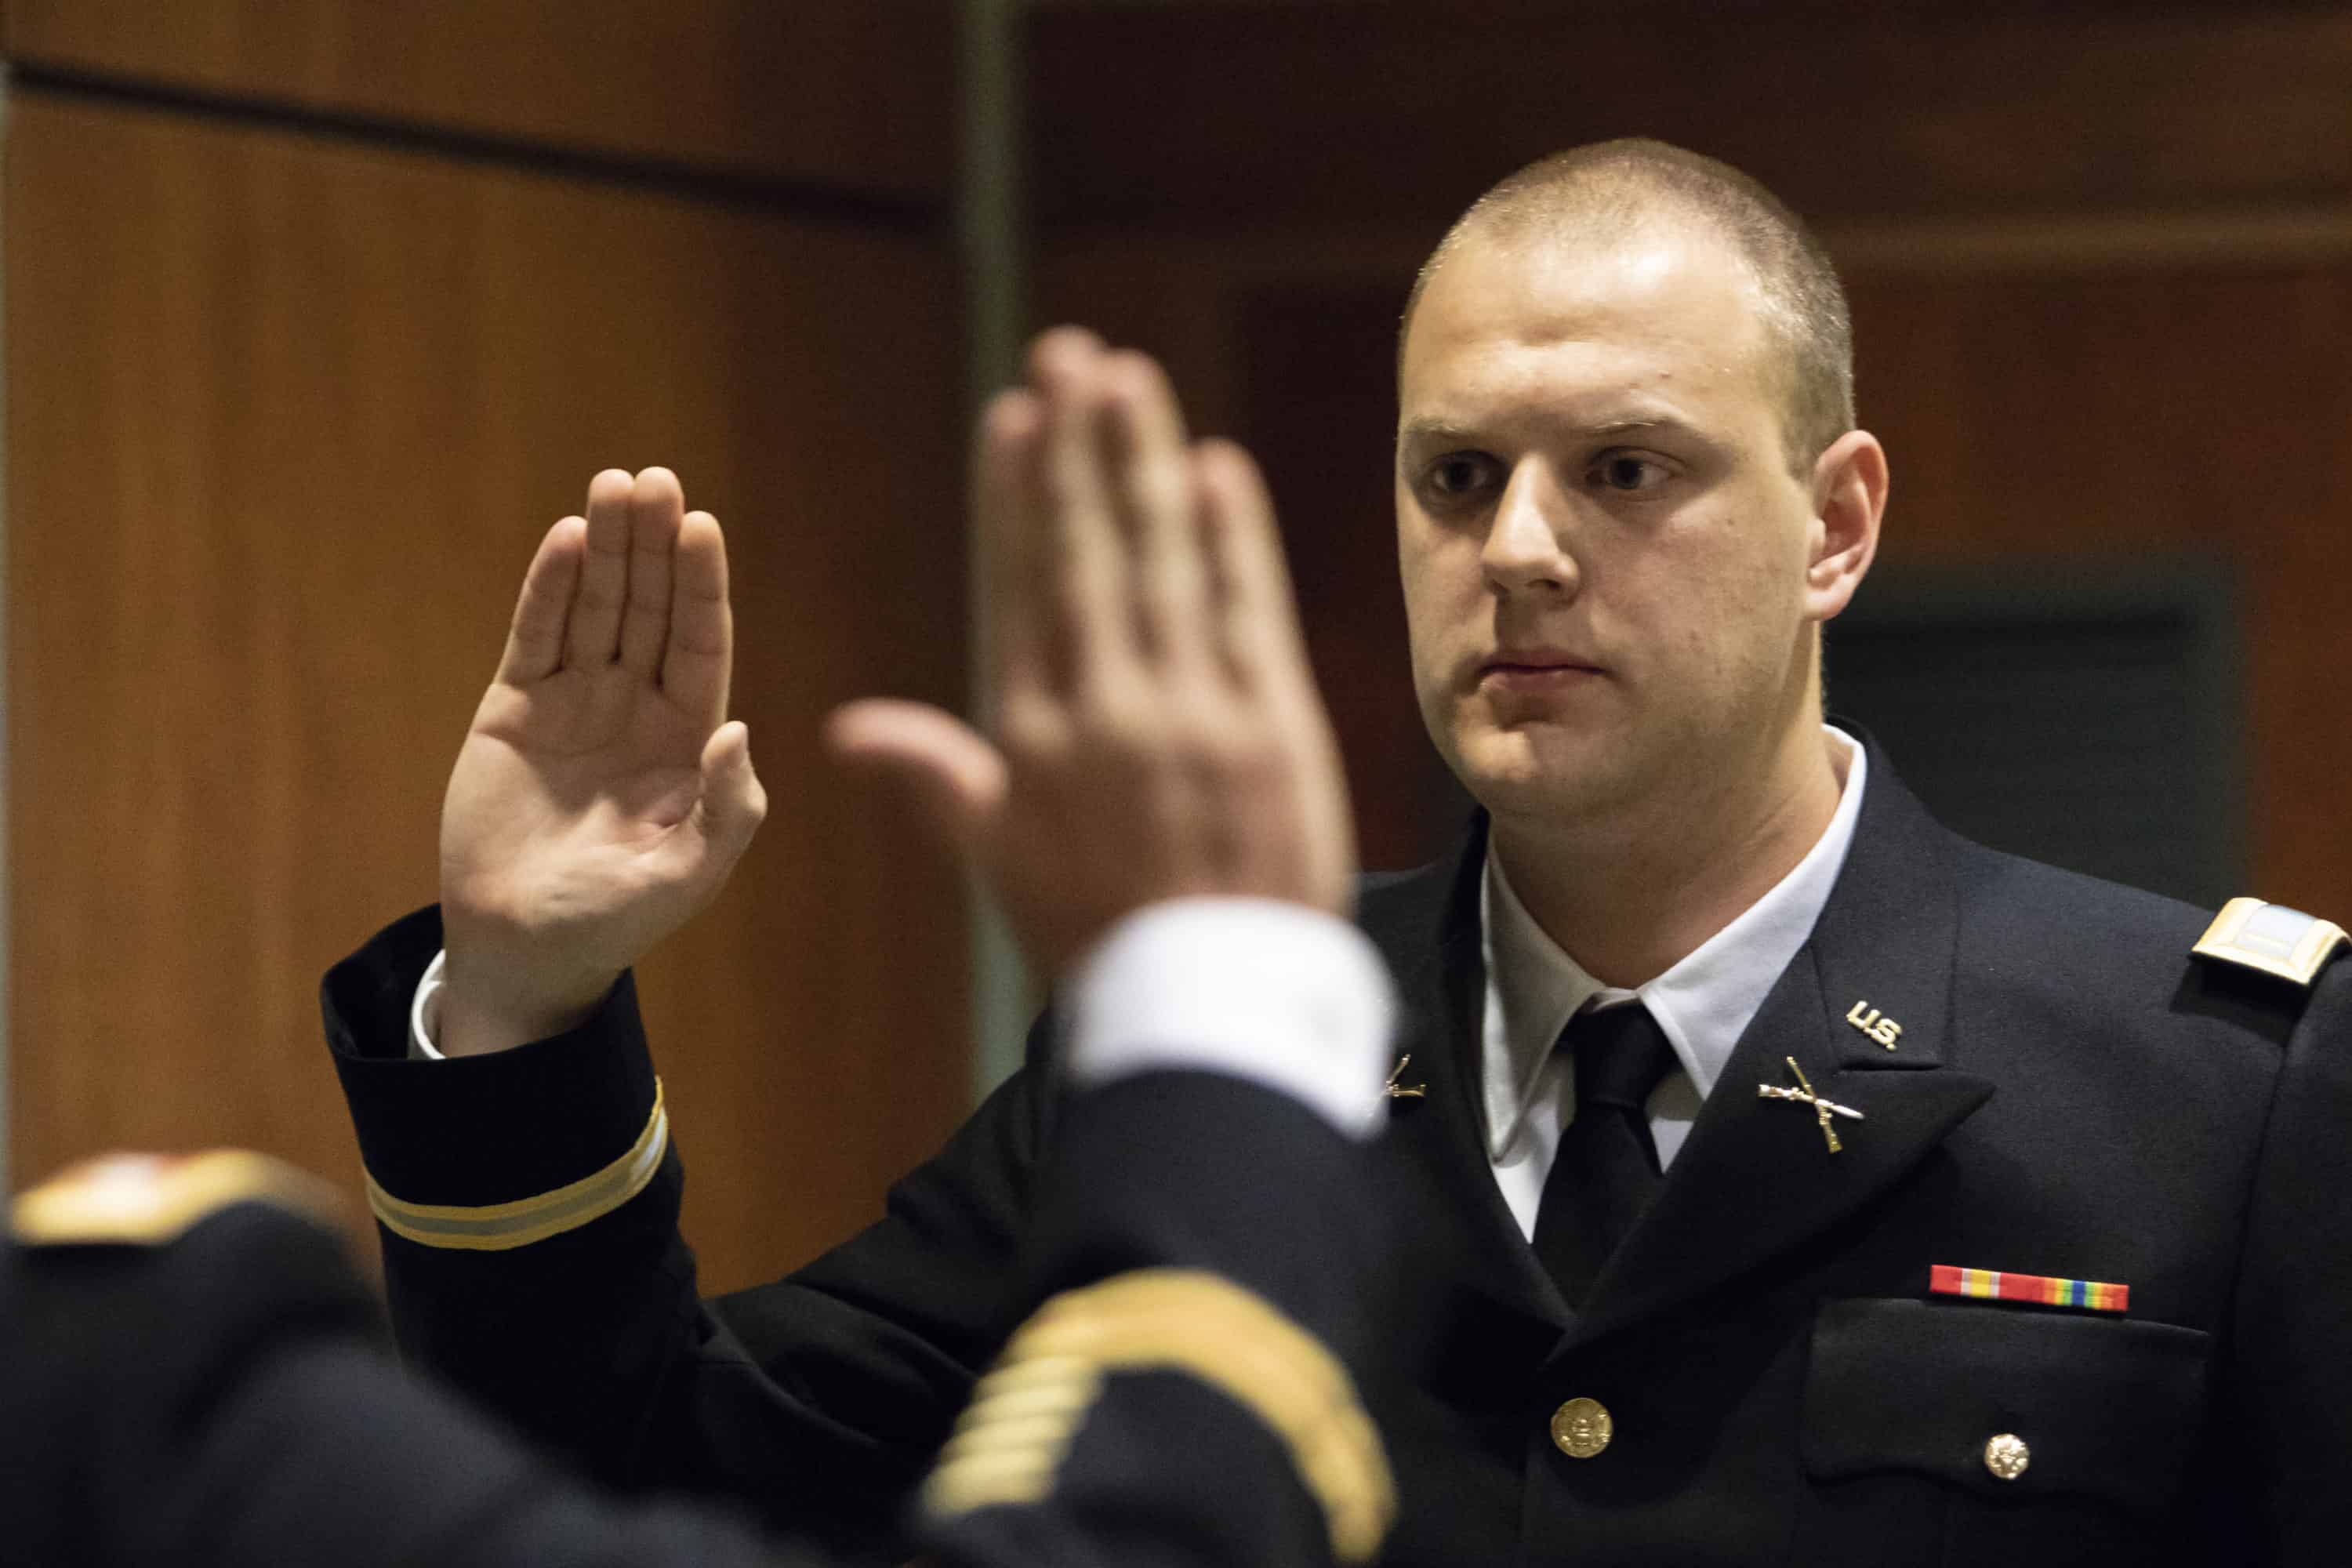 Son follows in father's footsteps to be commissioned as officer at FMU